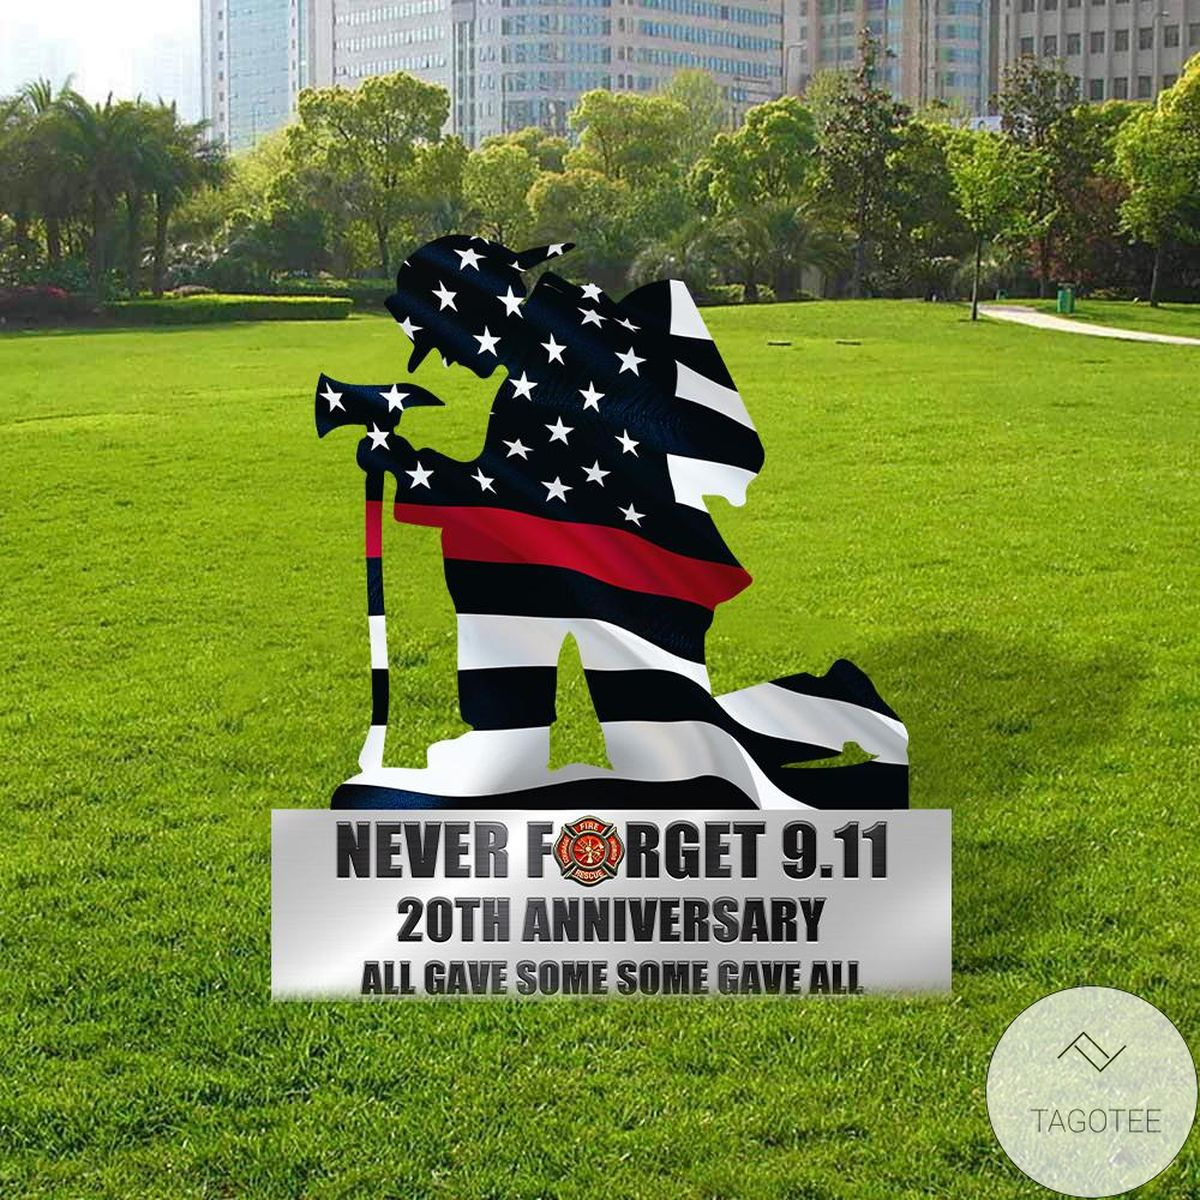 Personalized Kneeling Firefighter Never Forget 9.11 Metal Wall Art Yard Sign